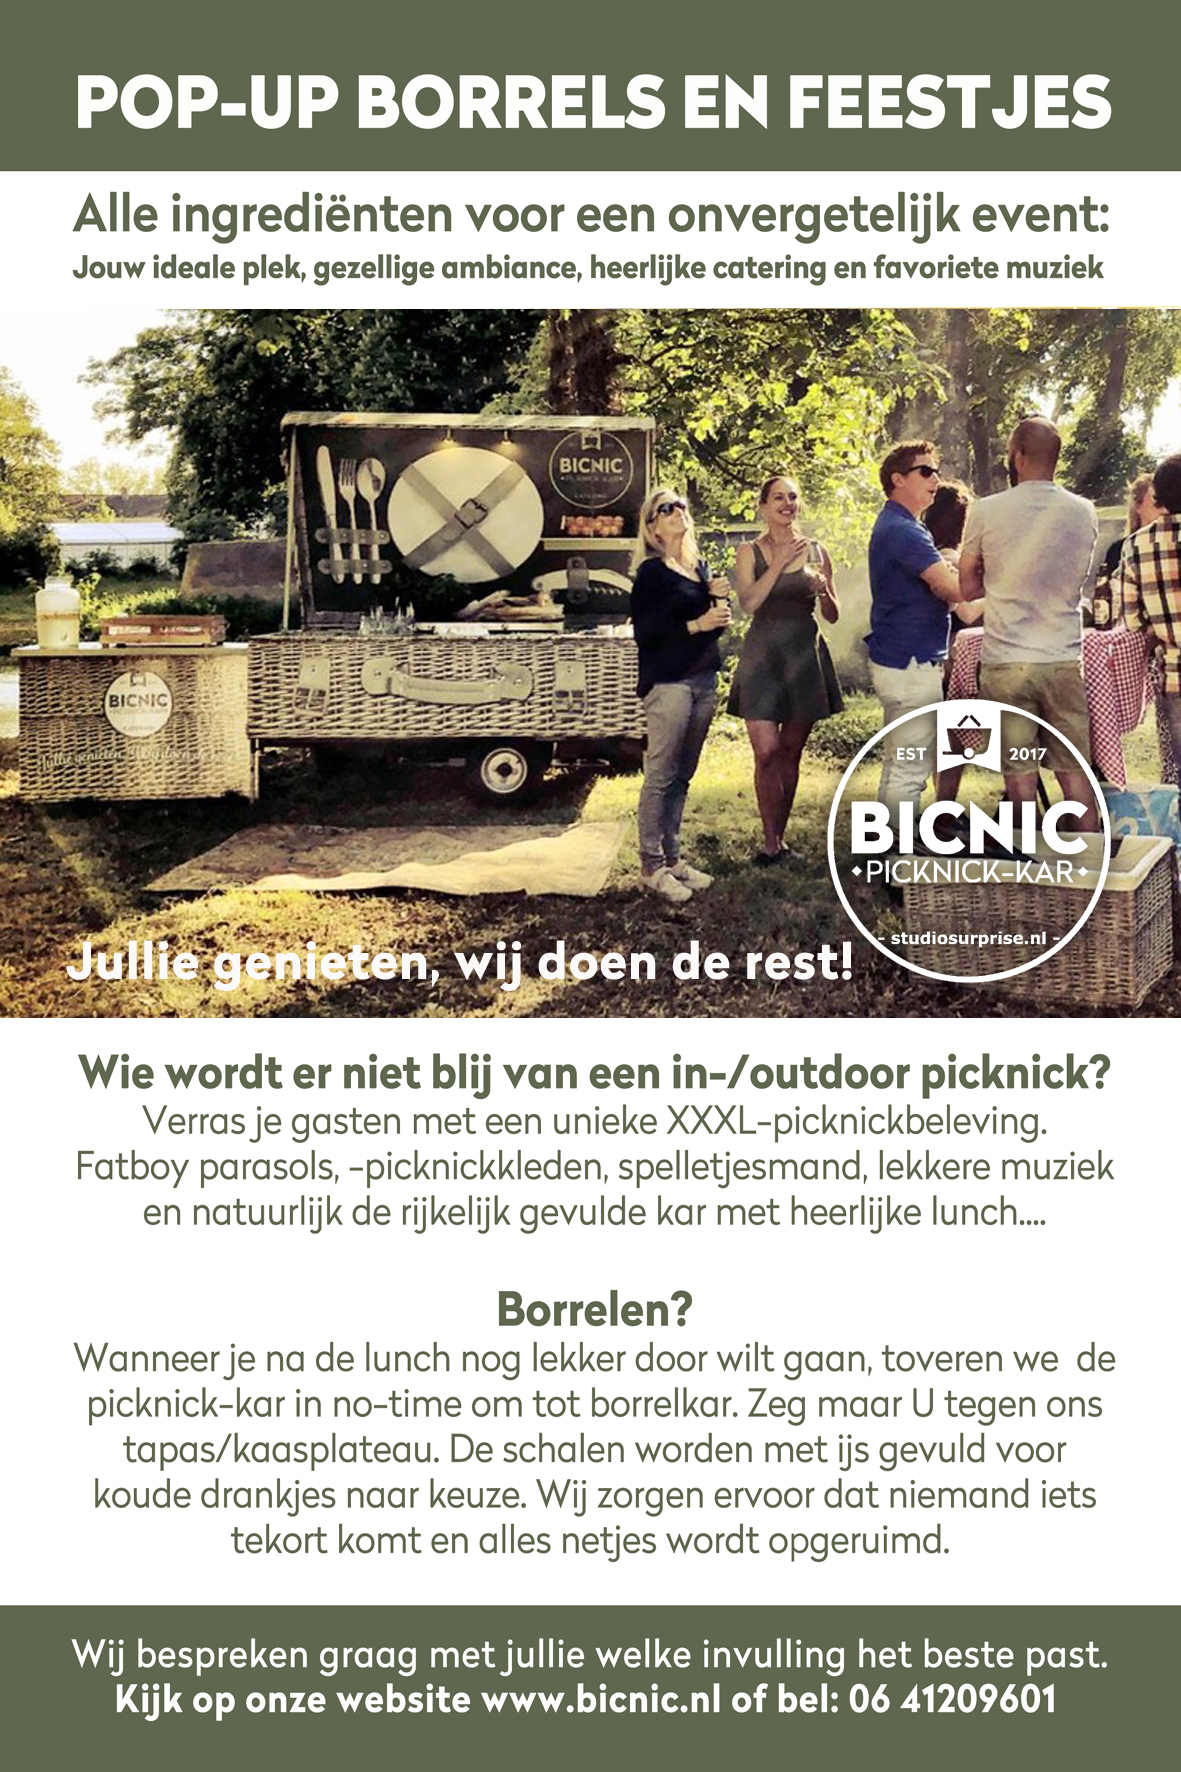 POP-UP BORREL en FEESTJES